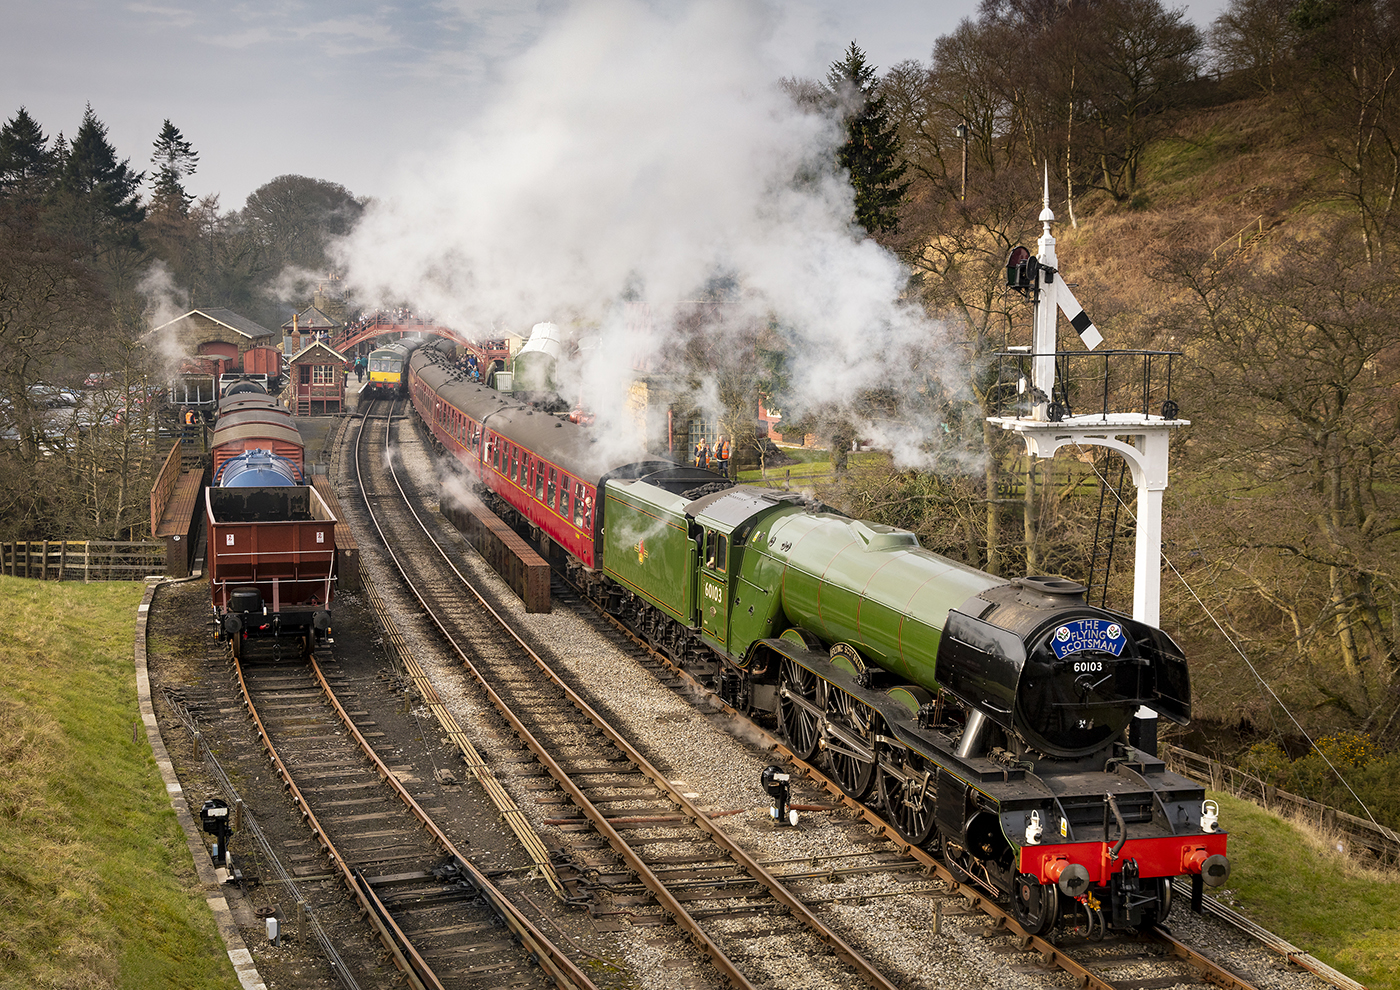 The Flying Scotsman at Goathland Station © Laurie Smithies